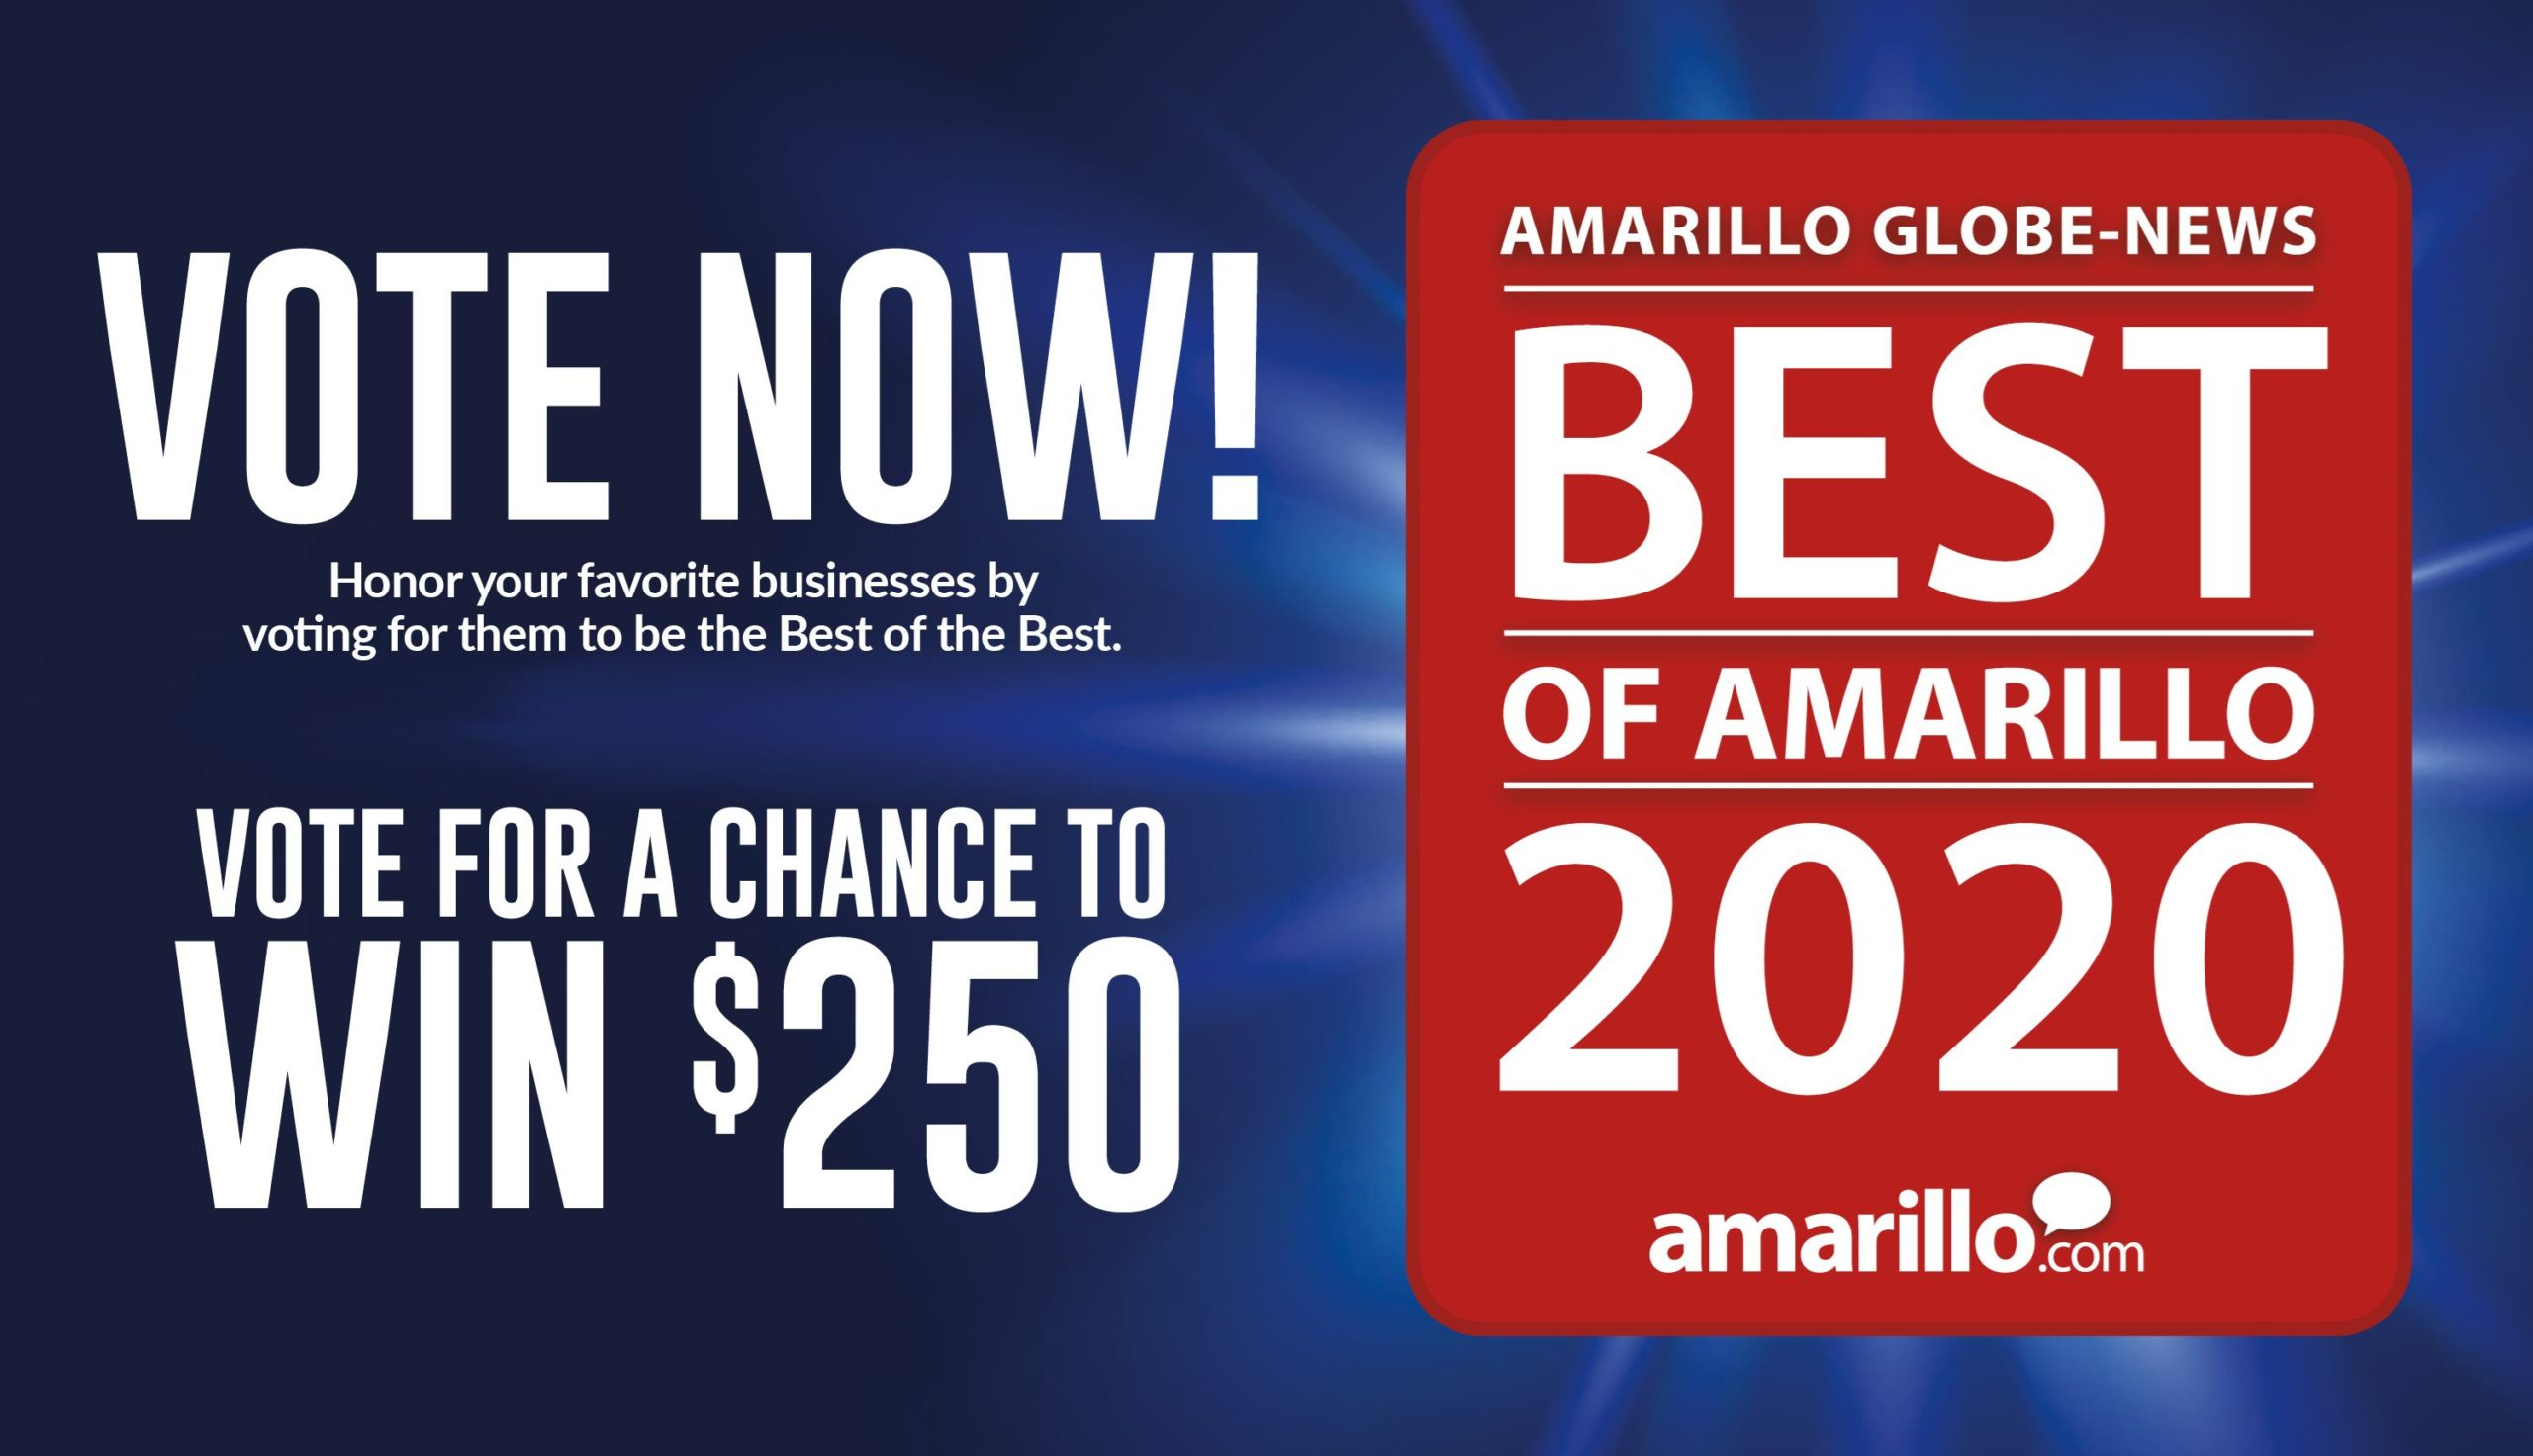 Best of Amarillo 2020